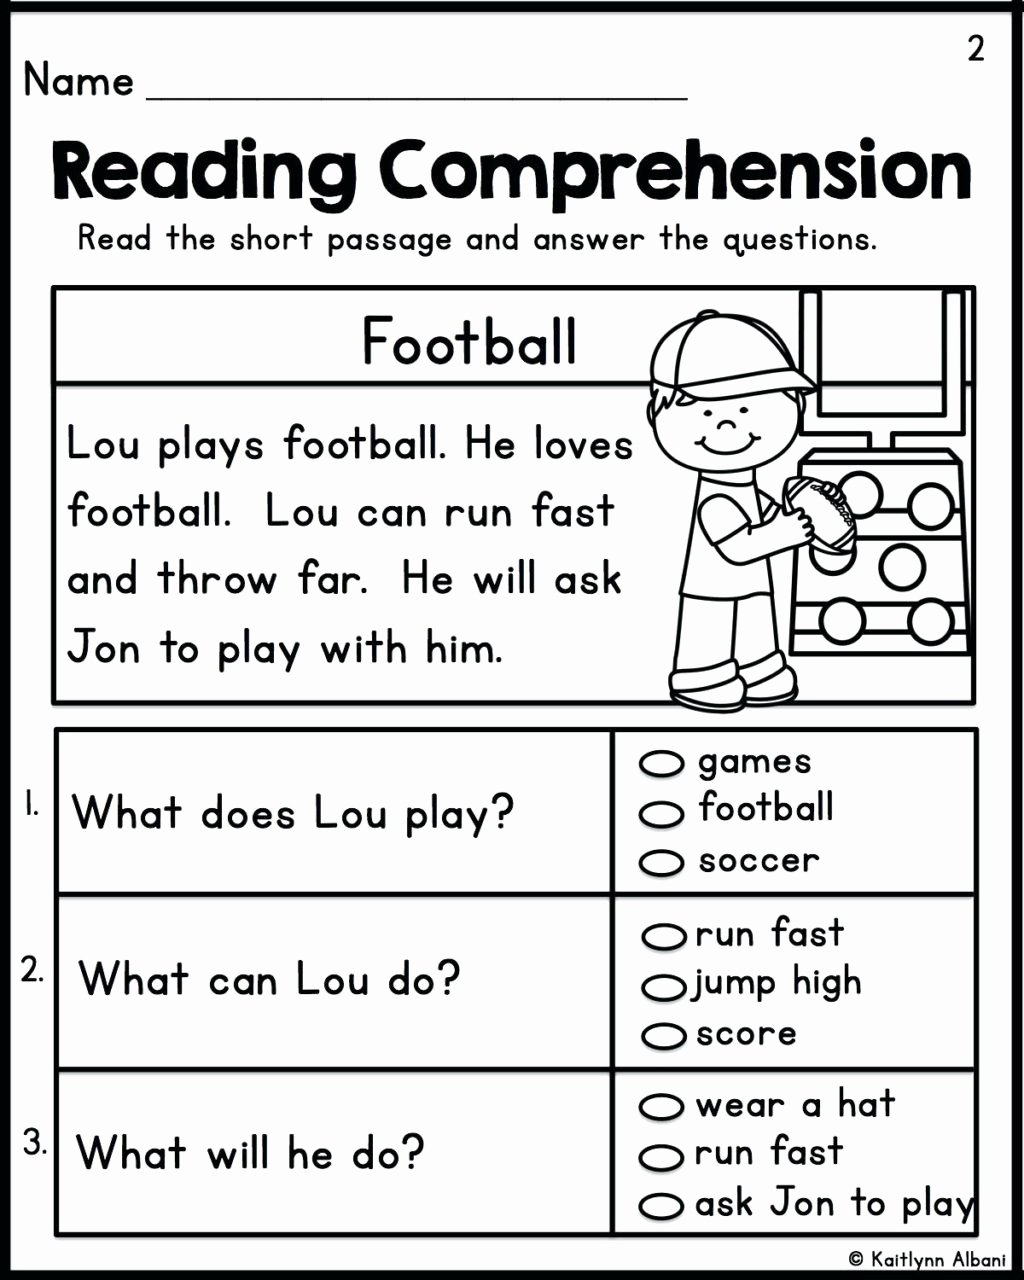 Comprehension Worksheets for Preschoolers Printable Worksheet Worksheet Ideas Excelent Free Second Grade